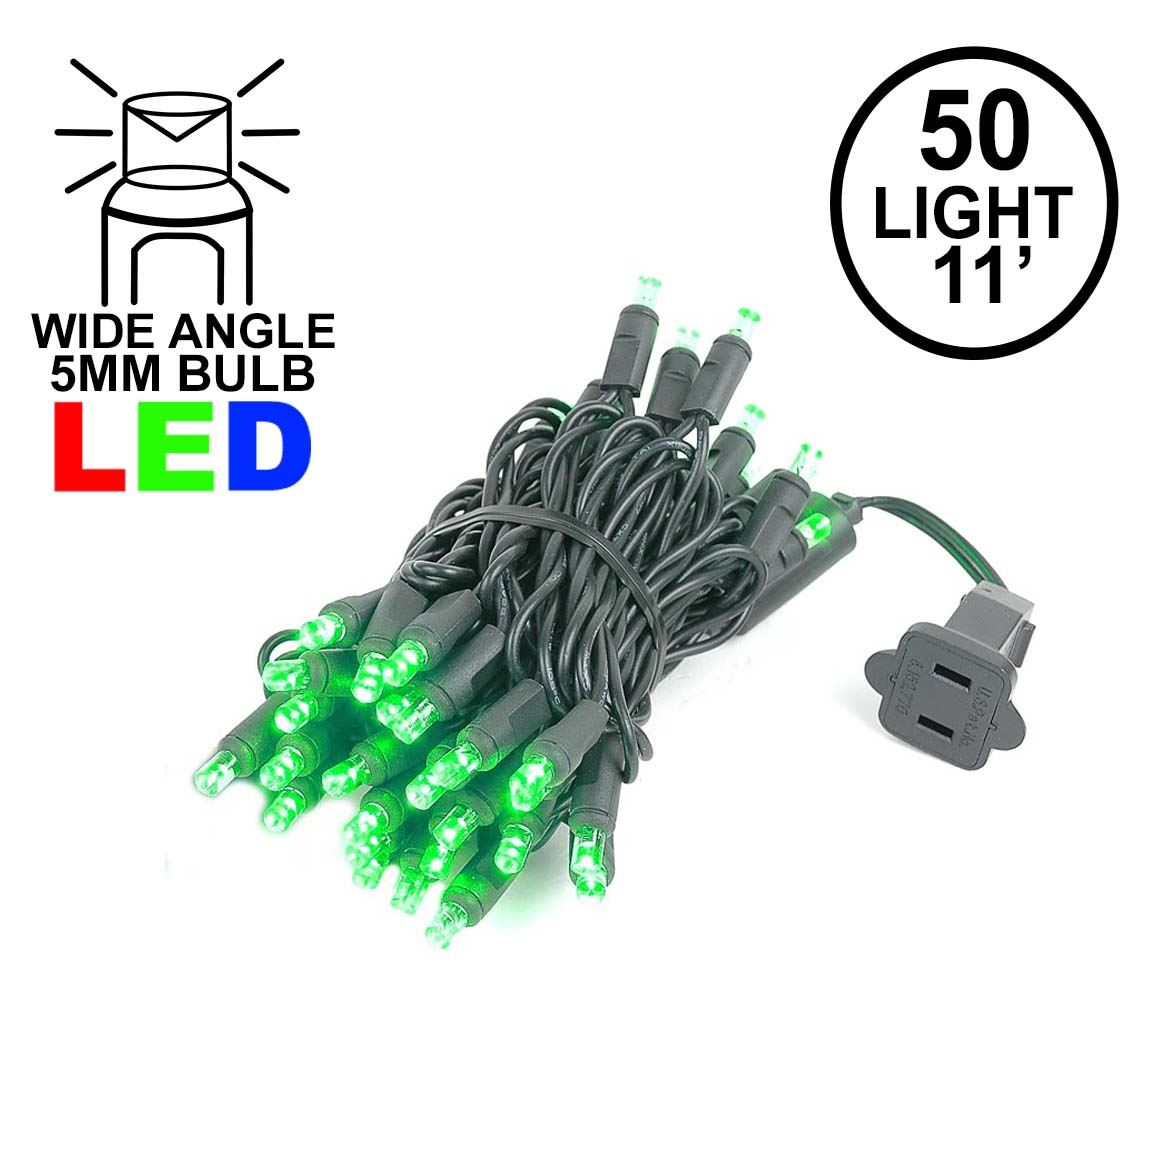 Picture of 50 LED Green LED Christmas Lights 11' Long on Black Wire